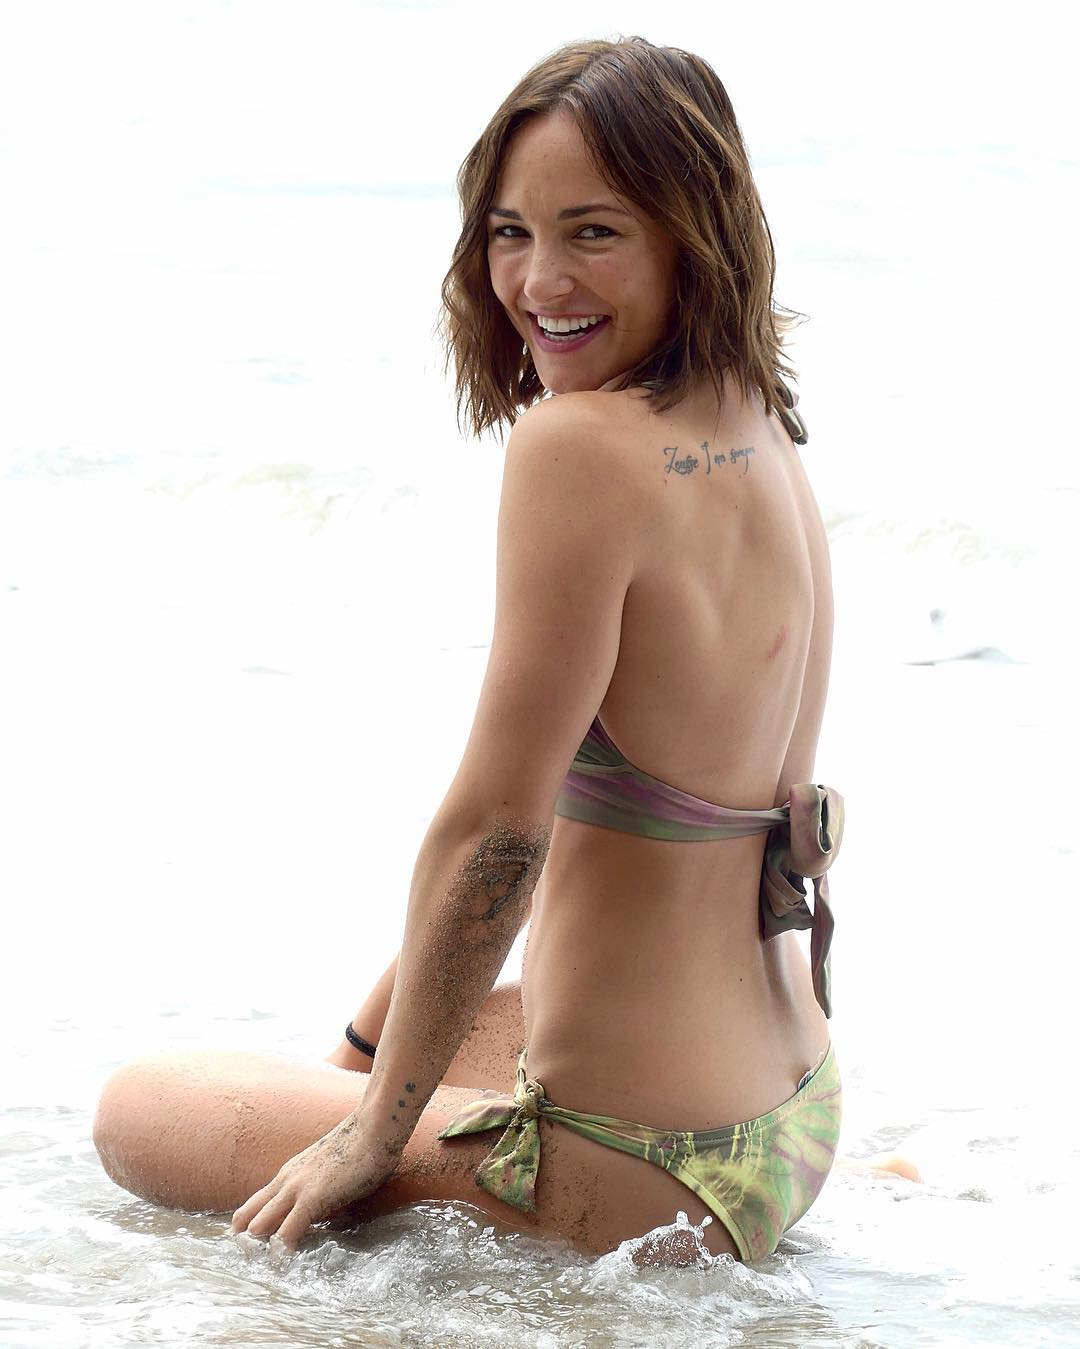 Briana Evigan Sexy Photos